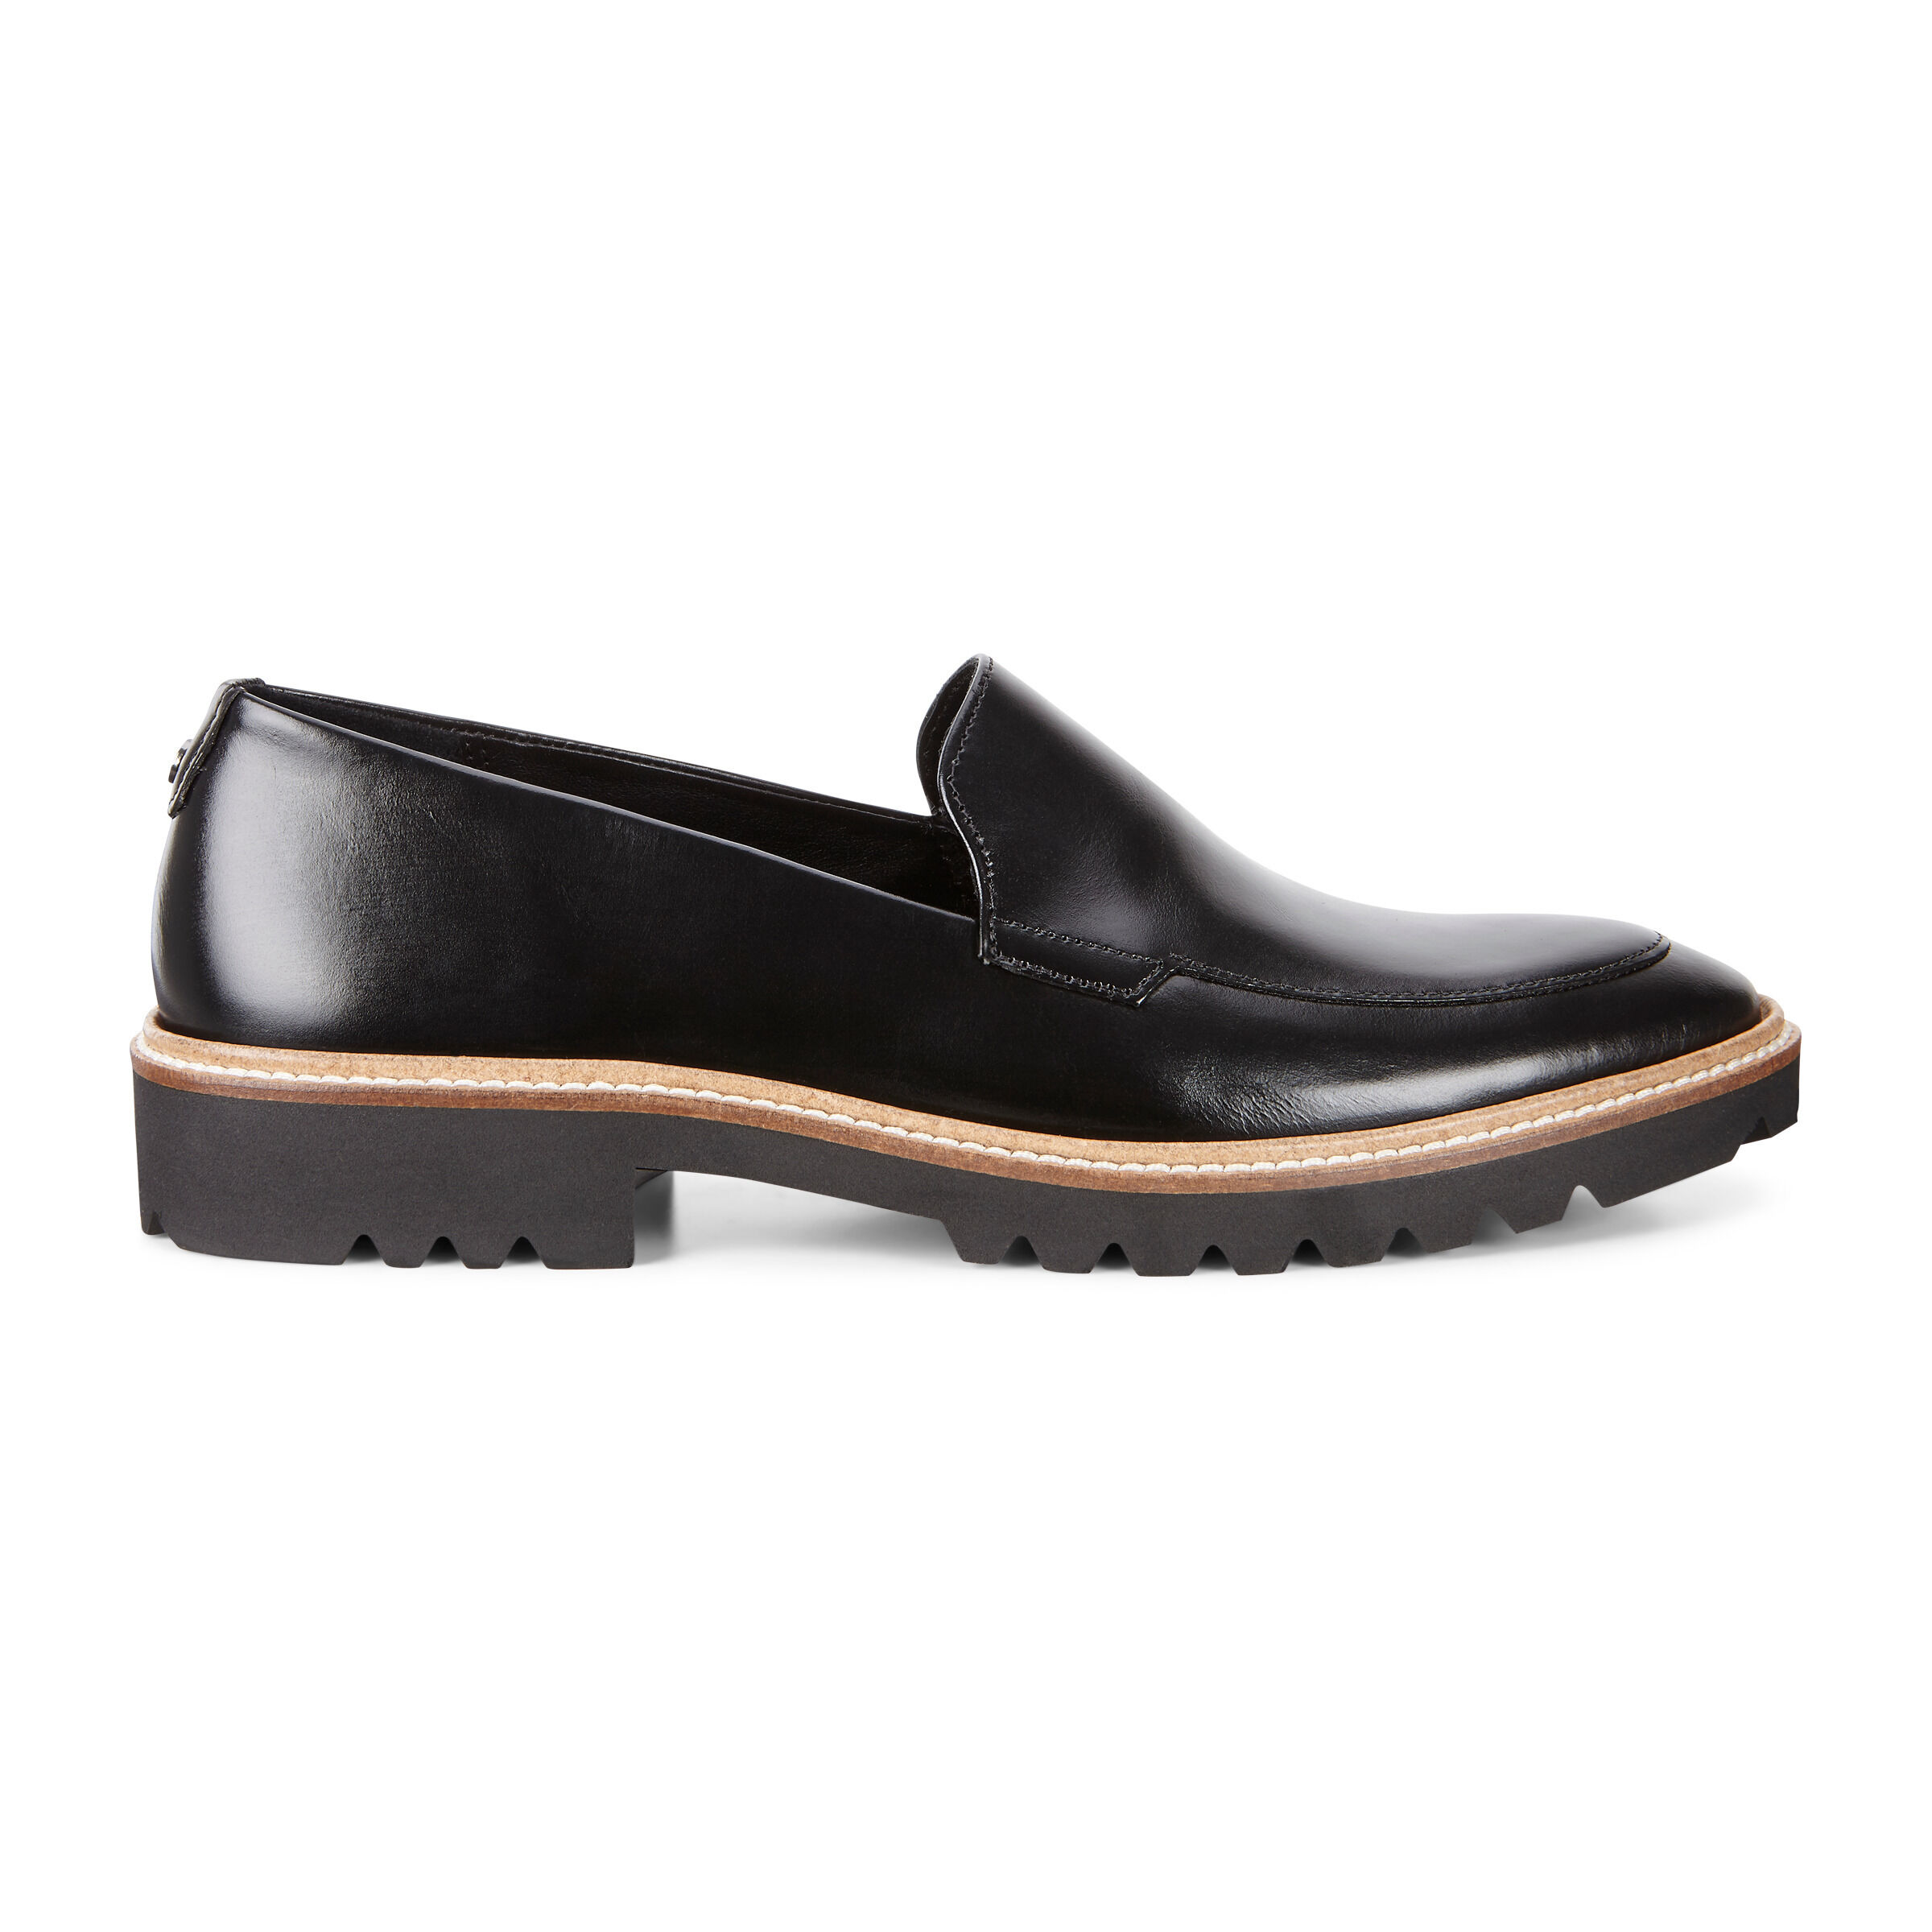 에코 ECCO INCISE TAILORED Womens Loafer,black